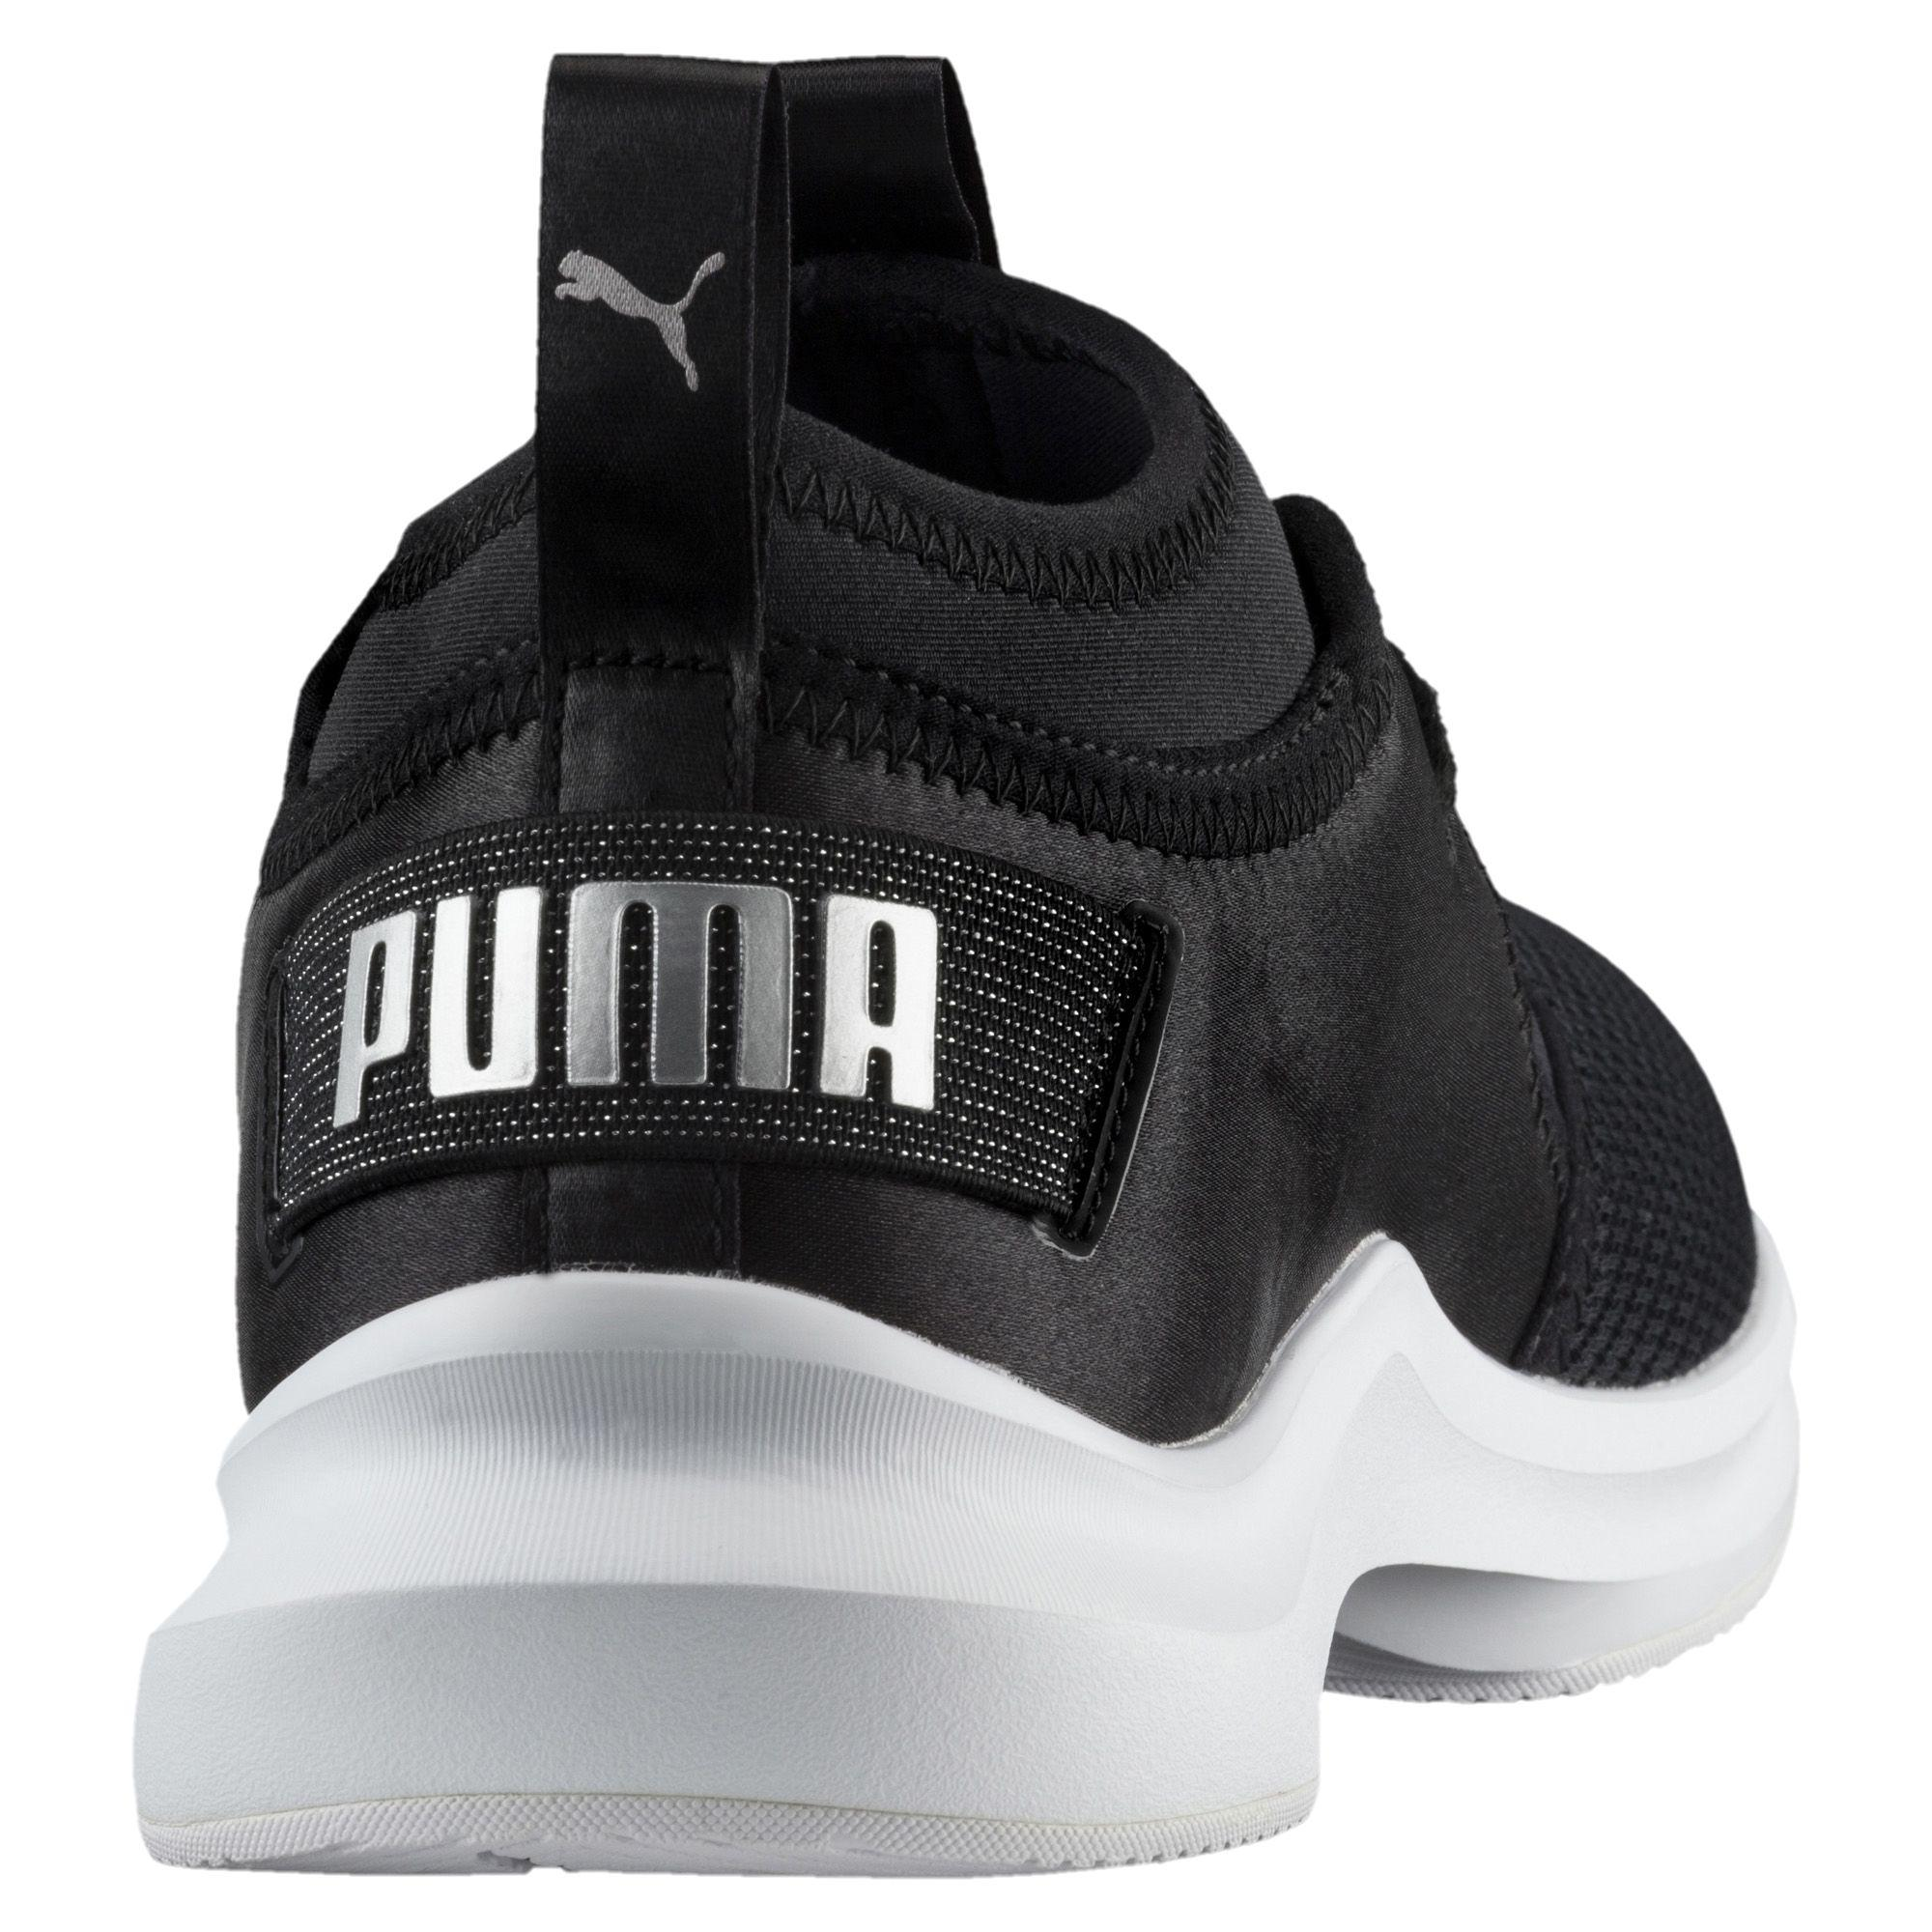 Lyst - PUMA Phenom Satin Low Ep Women s Training Shoes in Black e044a7ecc